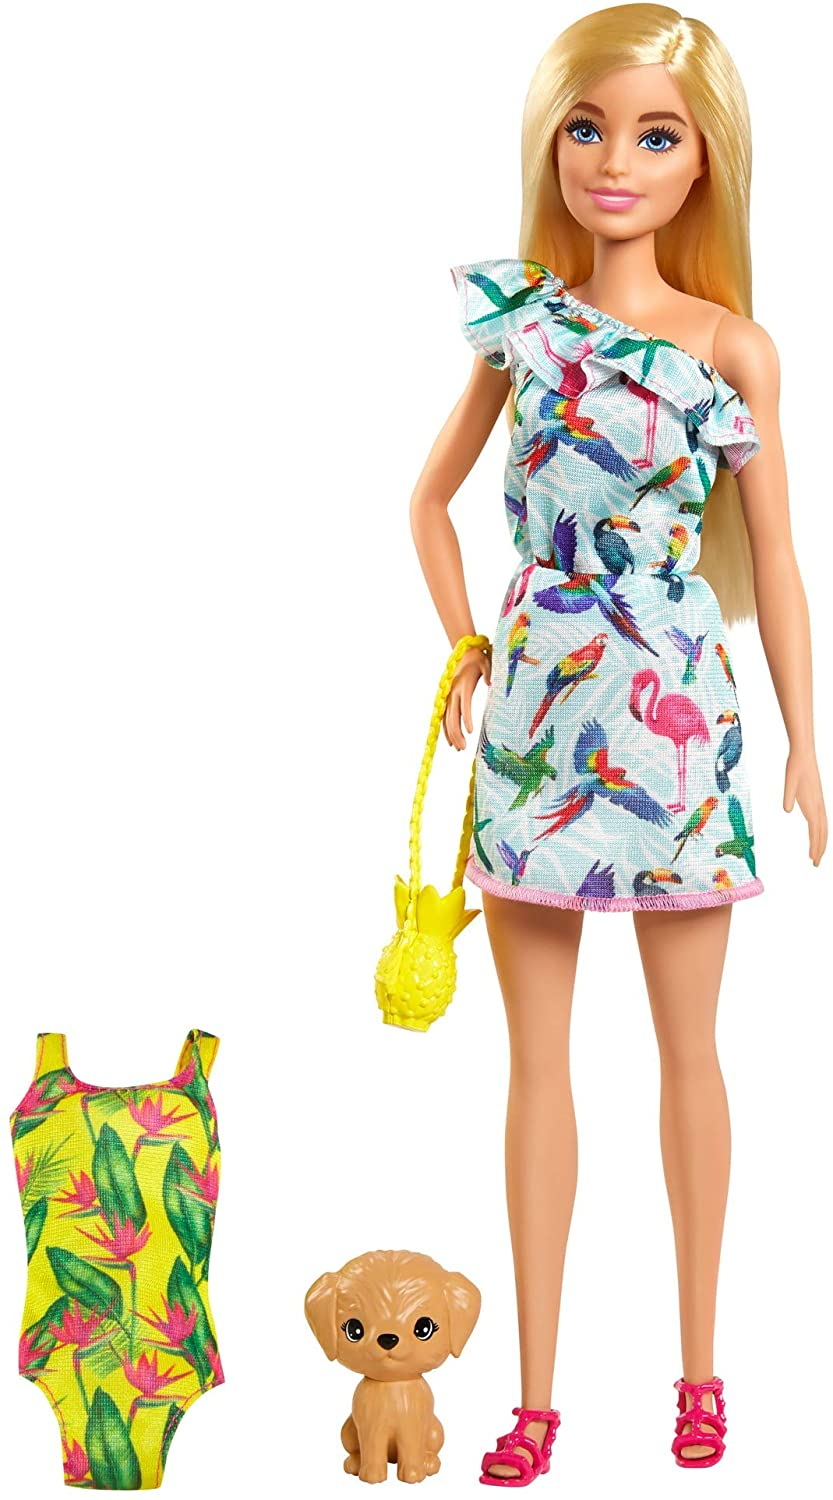 Barbie Chelsea The Lost Birthday Doll and Accessories (Mattel GRT87)